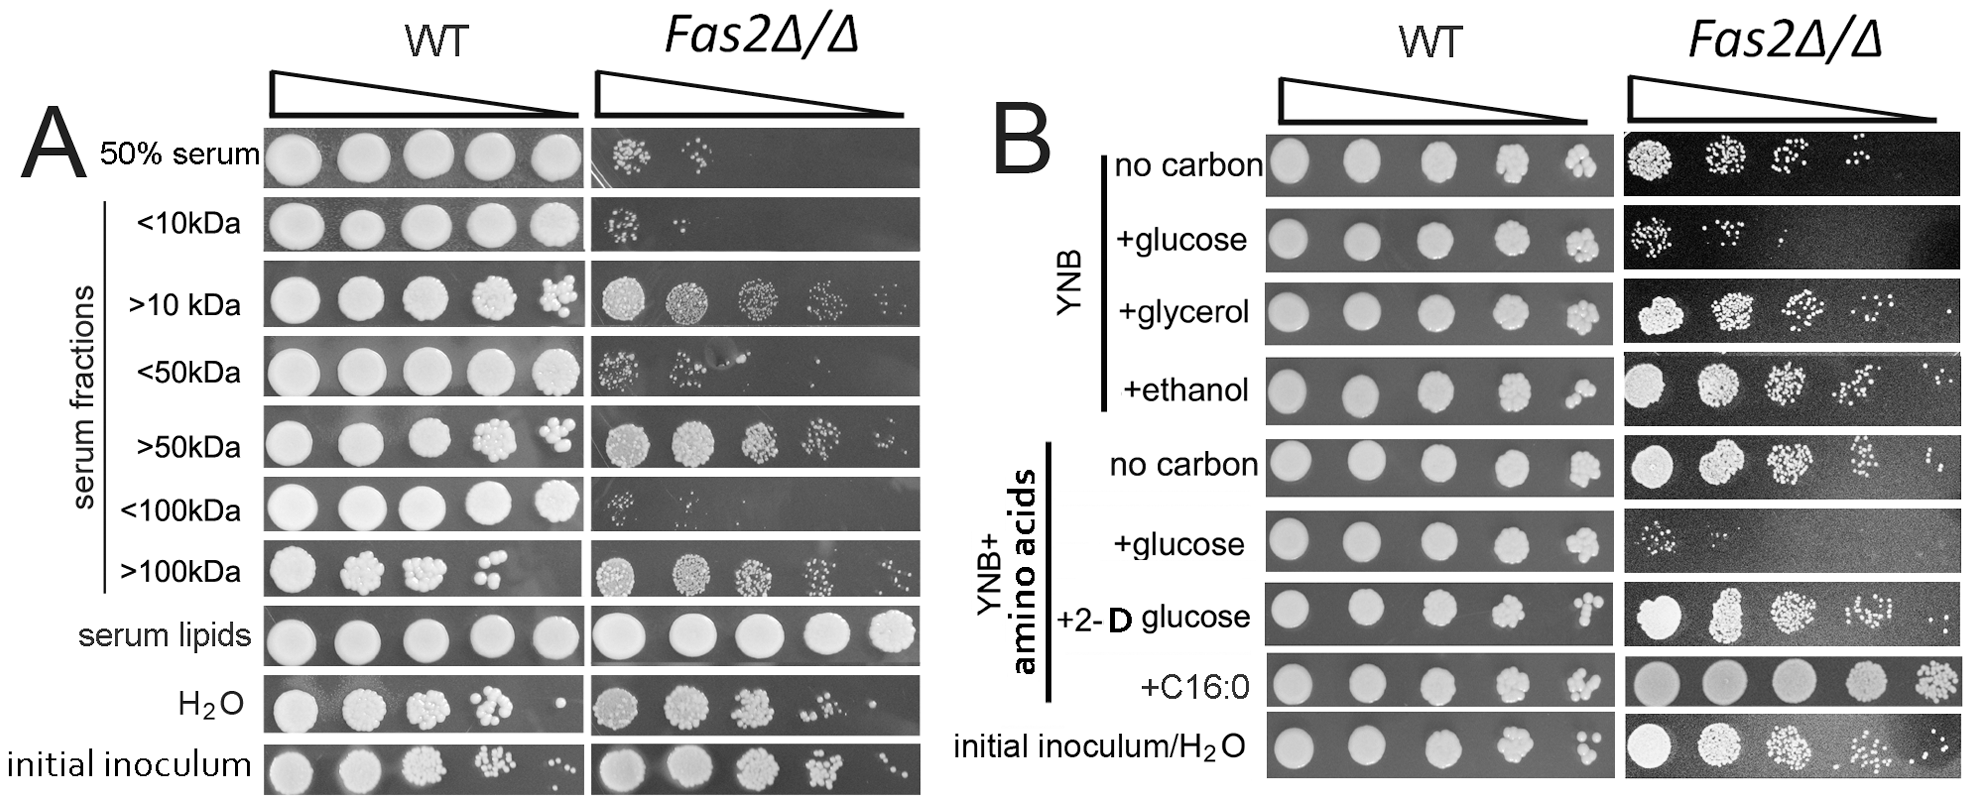 <i>Fas2Δ/Δ</i> strain is susceptible to serum and glucose containing media.